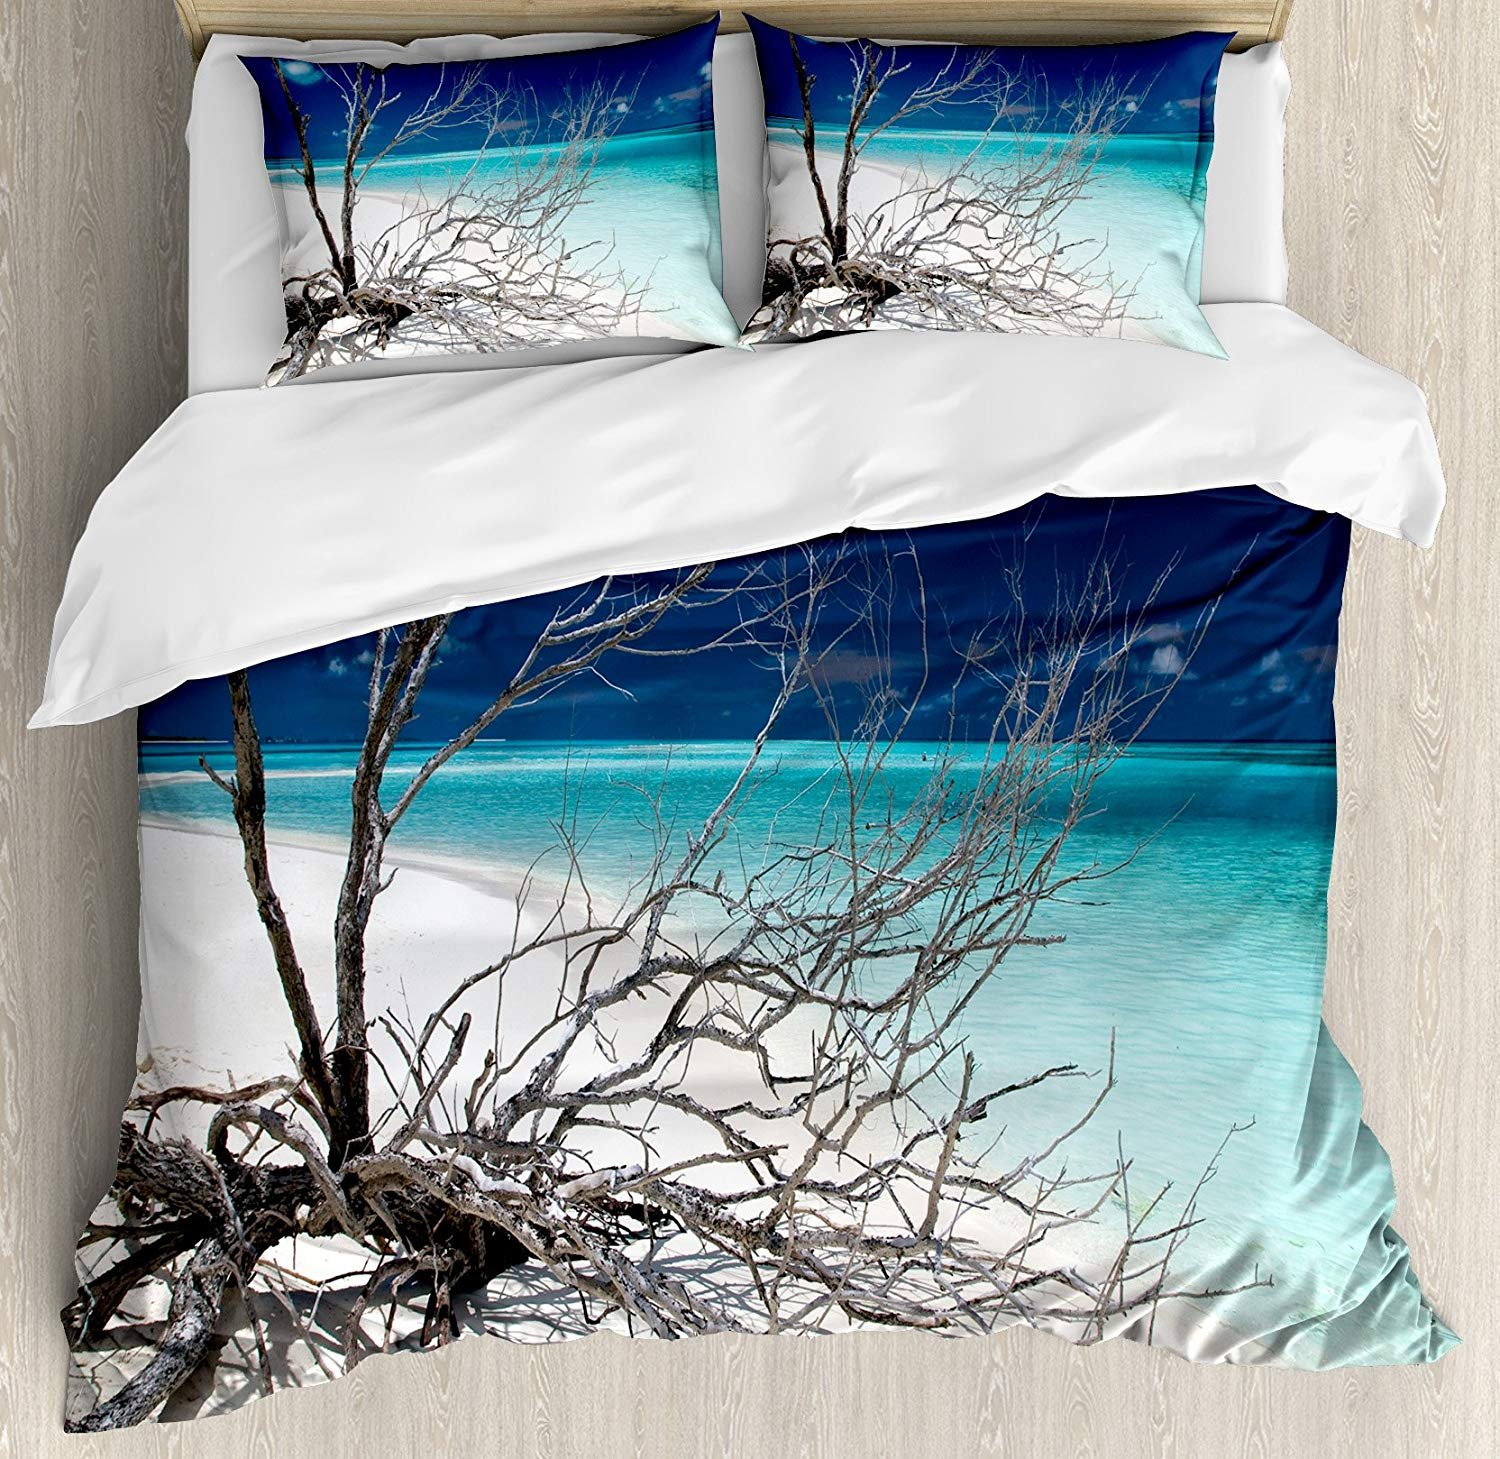 Driftwood Bedding Duvet Cover Sets for Children/Adult/Kids/Teens Twin Size, Seascape Theme Driftwood on The White Sandy Beach Coastal Digital Image, Hotel Luxury Decorative 4pcs, Turquoise and Blue